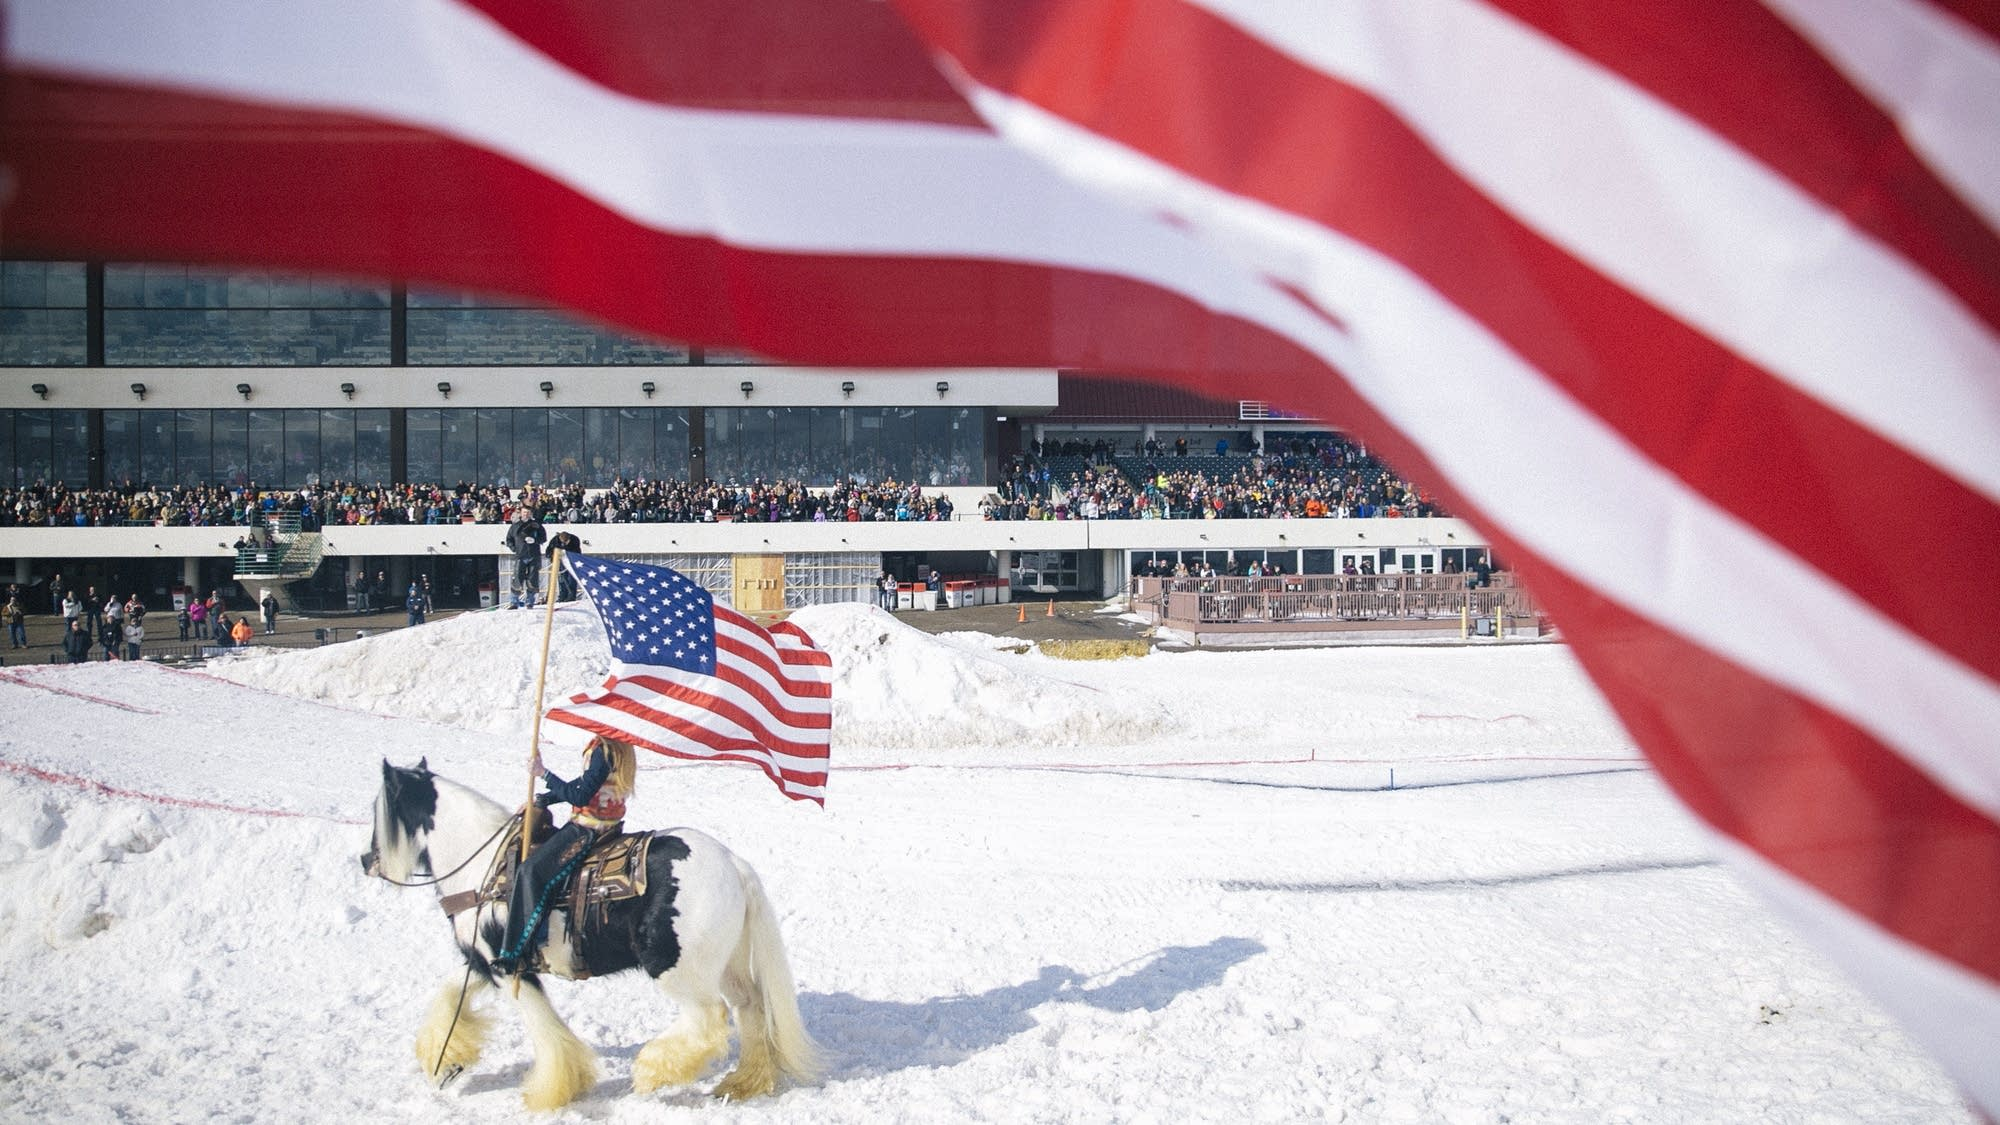 A  horse named Dirty Harry carries a rider and flag during the anthem.